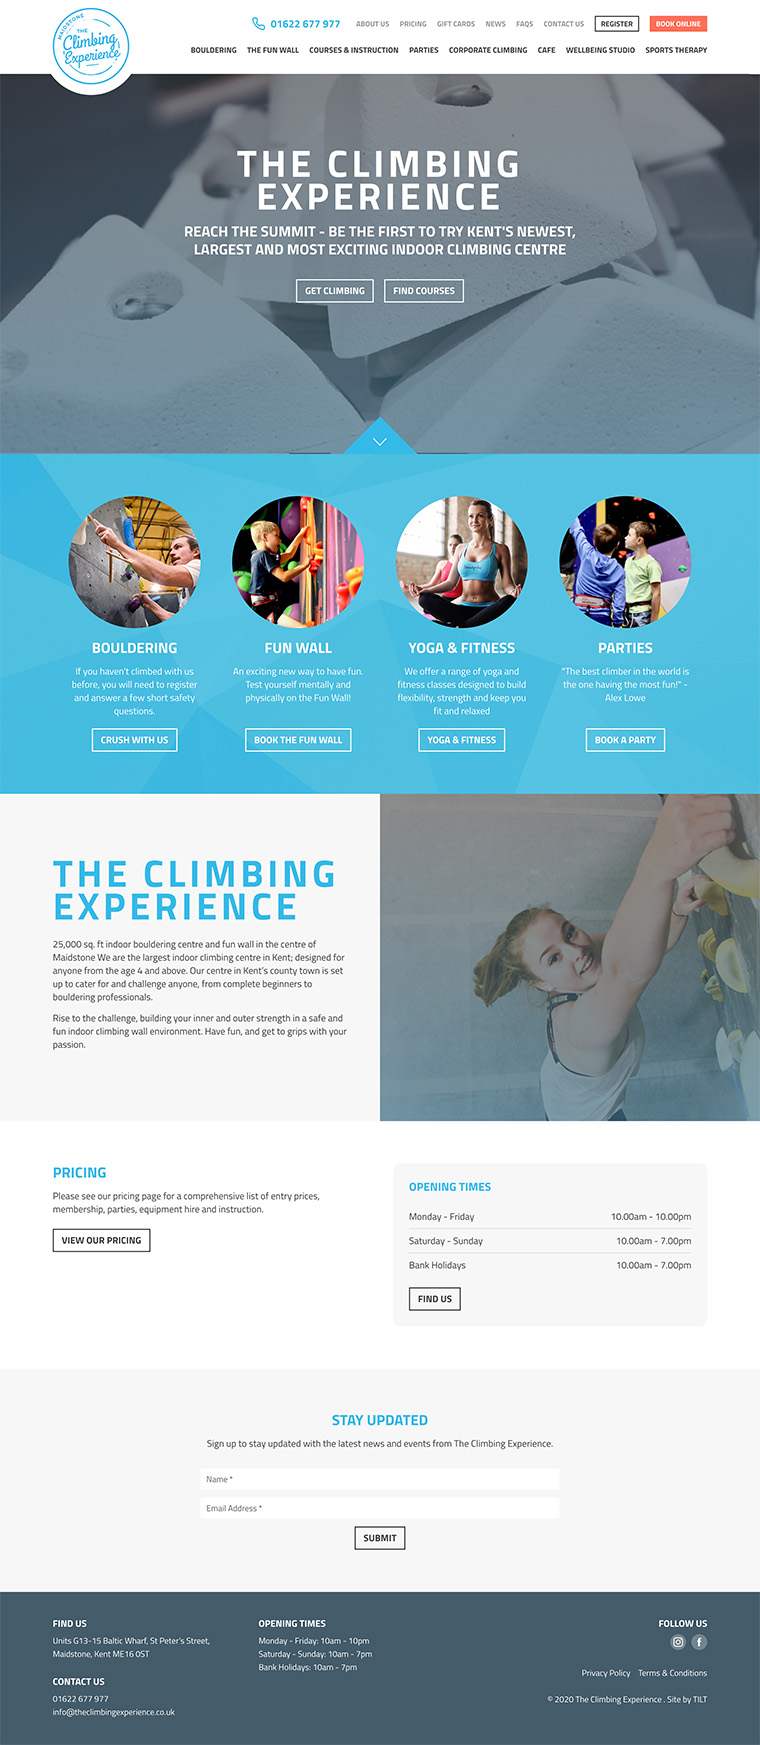 The Climbing Experience